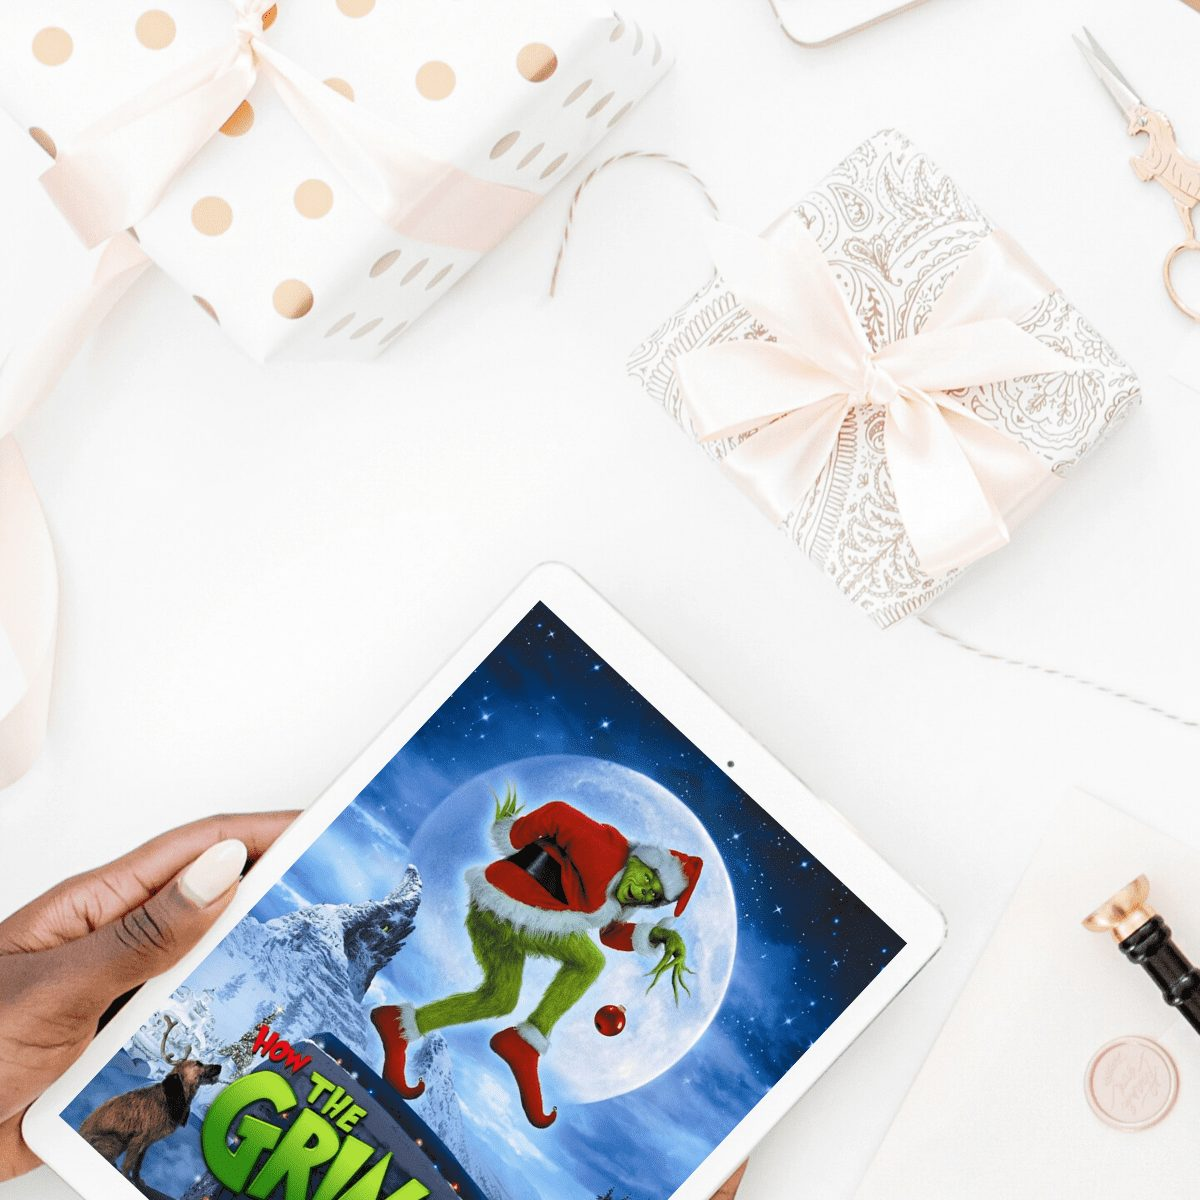 the grinch movie cover on an iPad surrounded by Christmas wrapped gifts